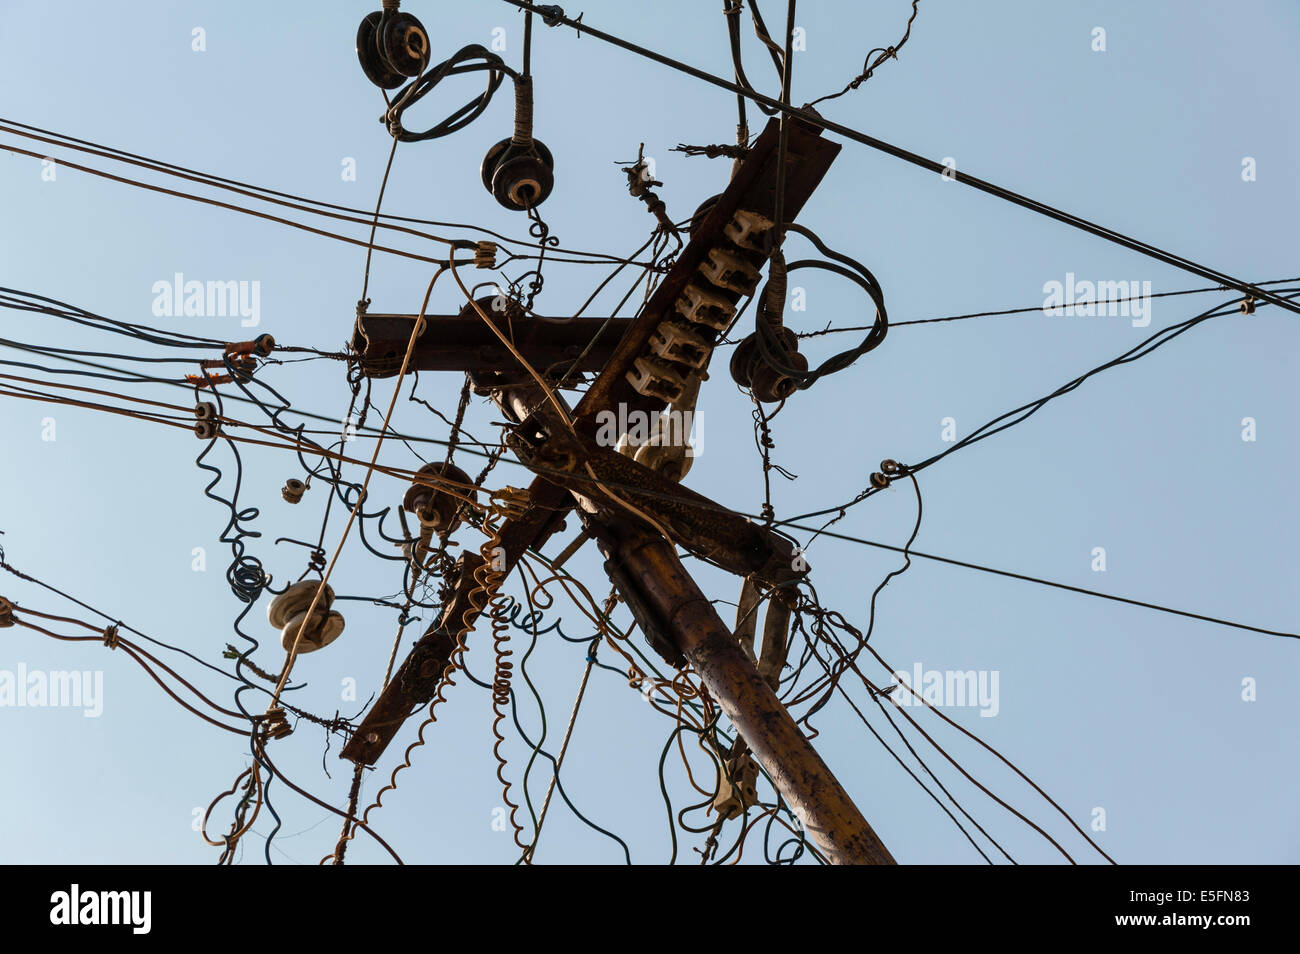 Chaotic array of power cables, Tamil Nadu, India - Stock Image